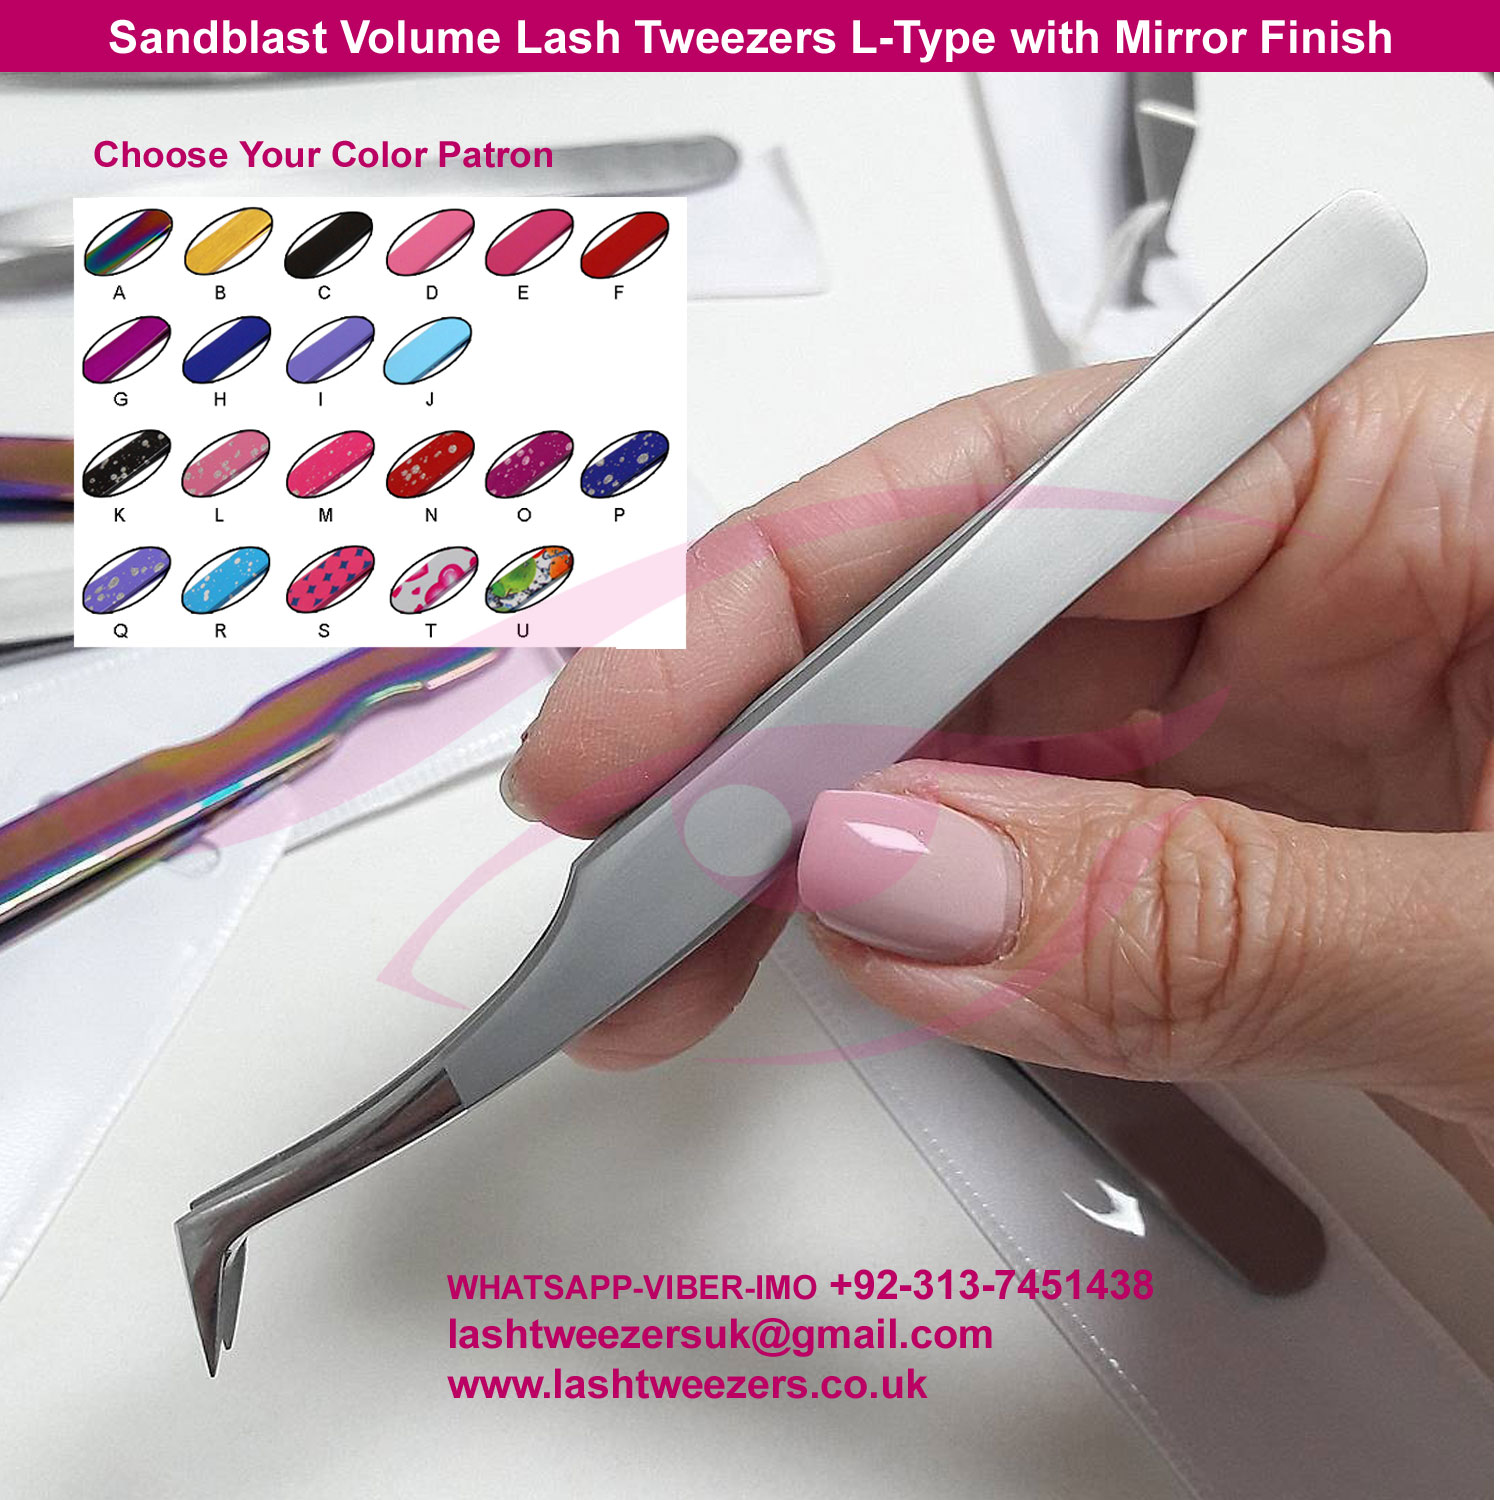 Sandblast Volume Lash Tweezers L-Type with Mirror Finish